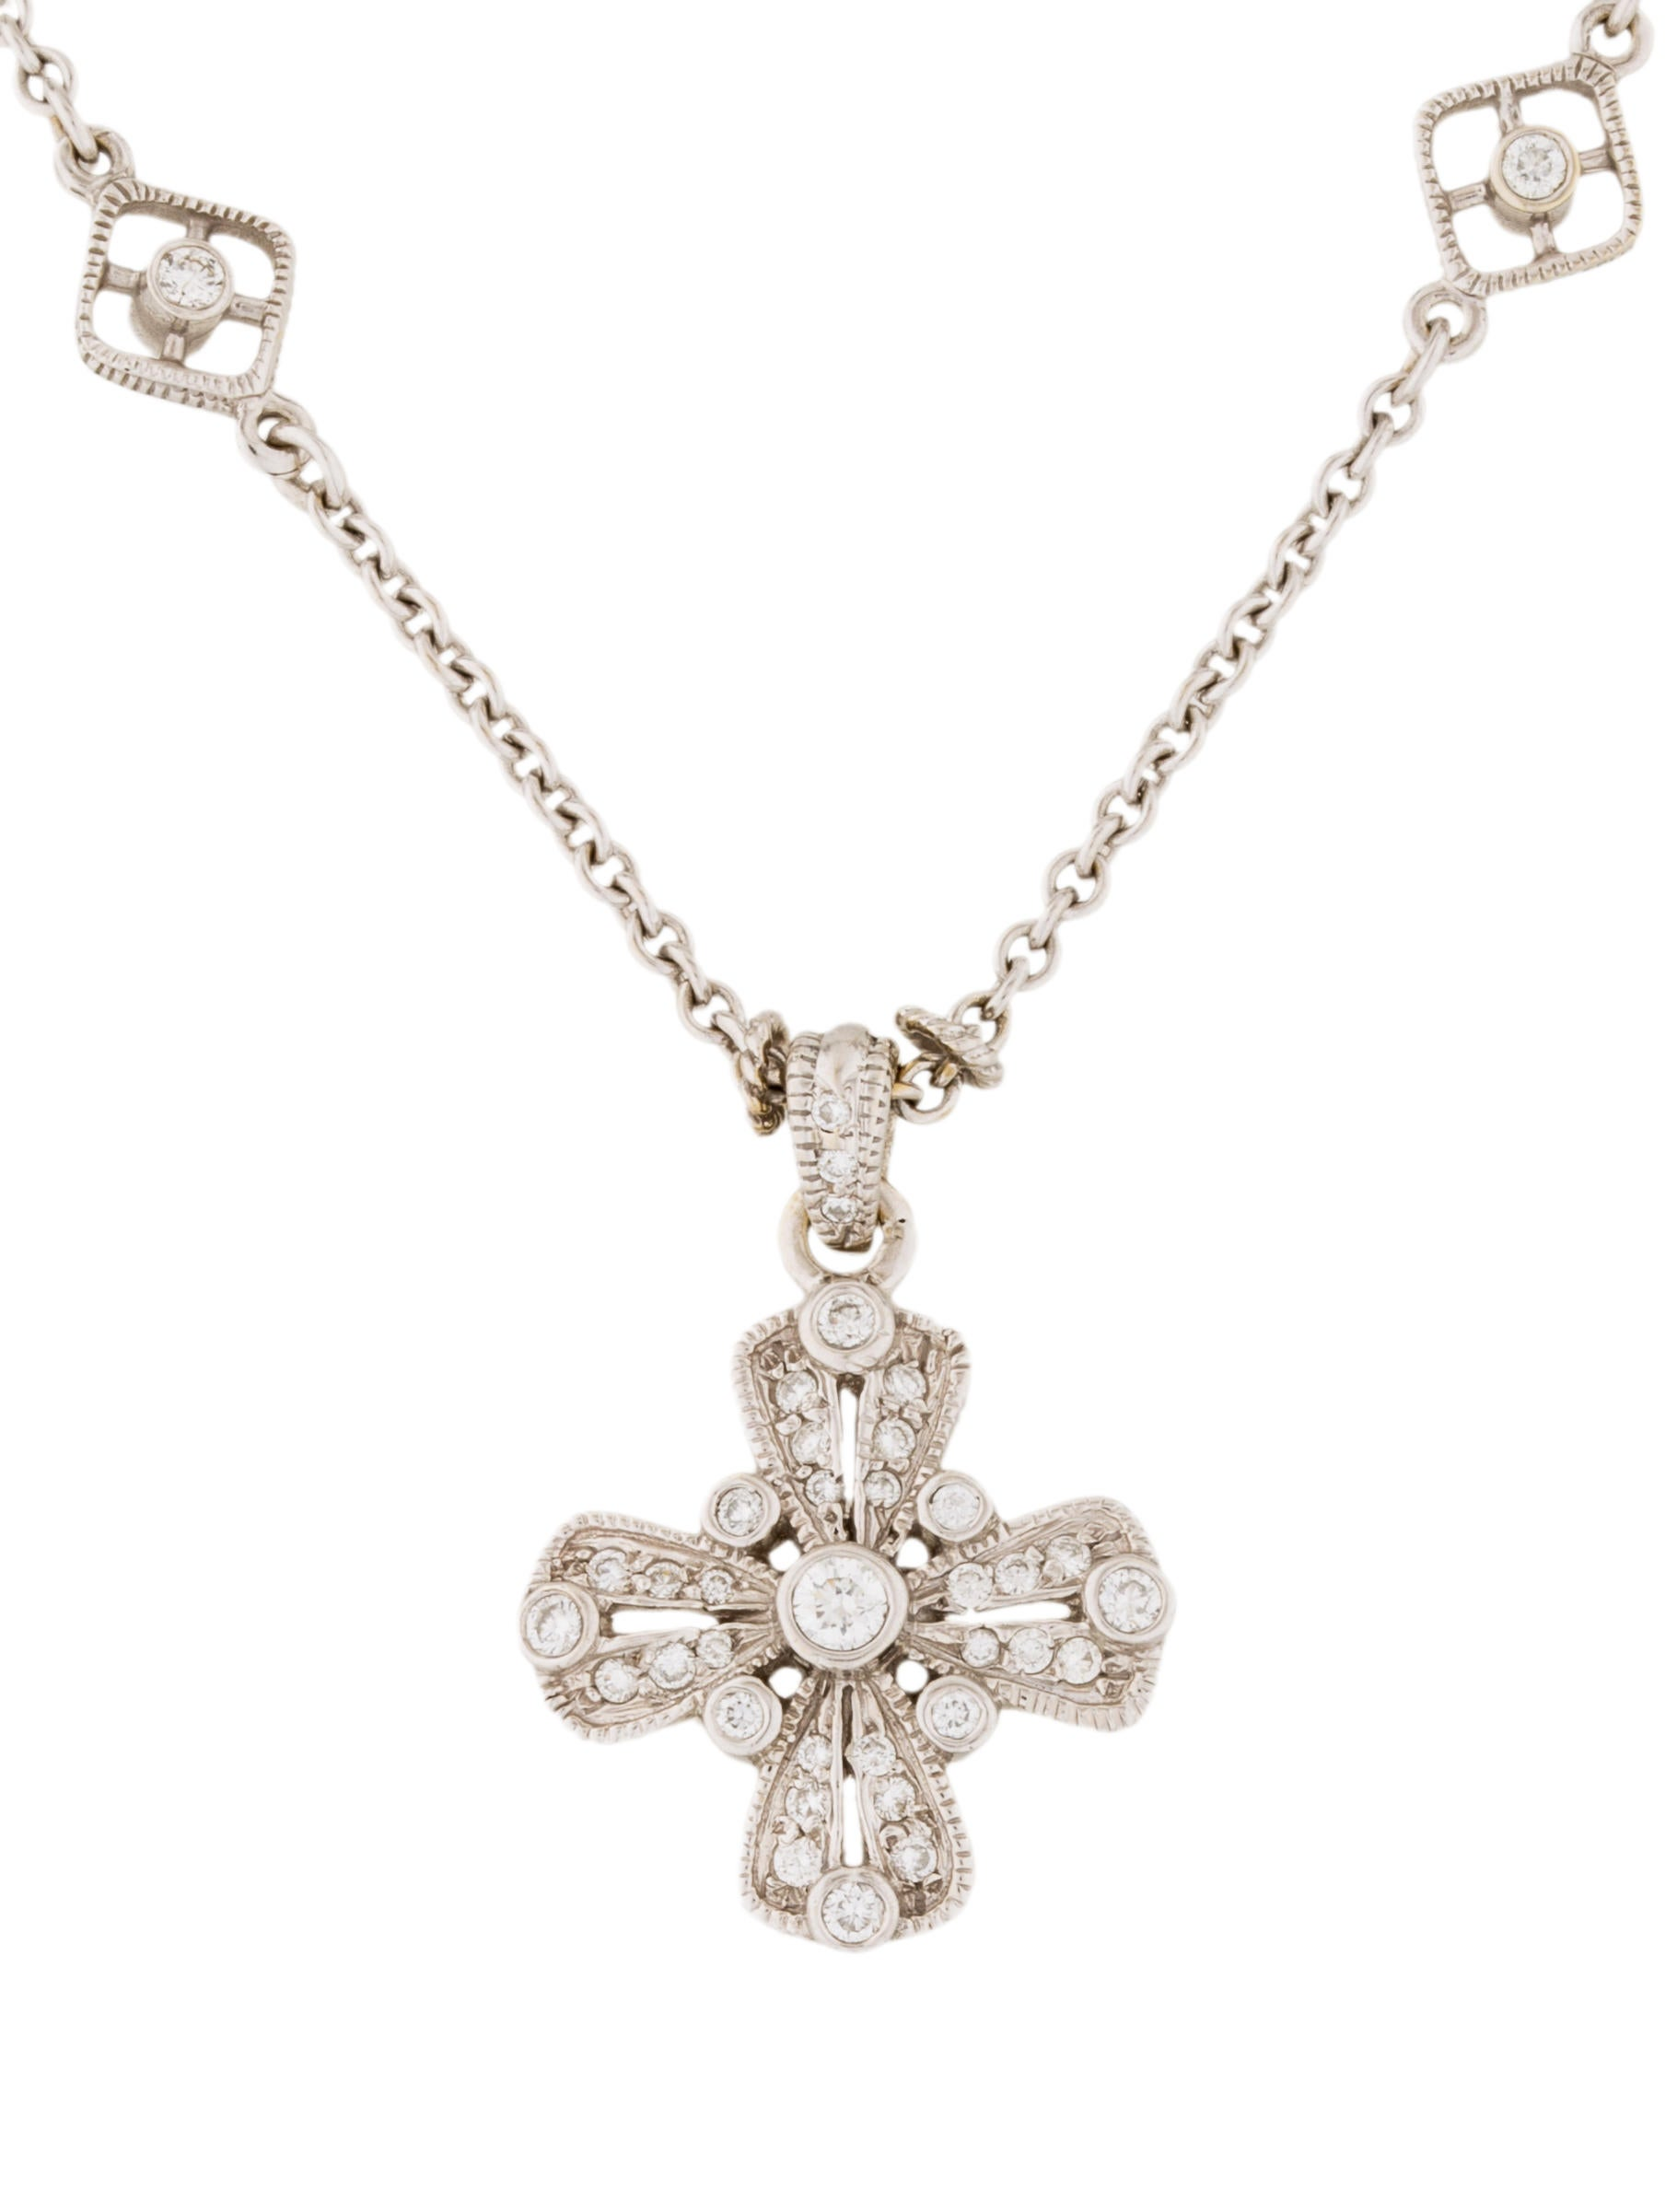 judith ripka 18k diamond cross pendant necklace. Black Bedroom Furniture Sets. Home Design Ideas